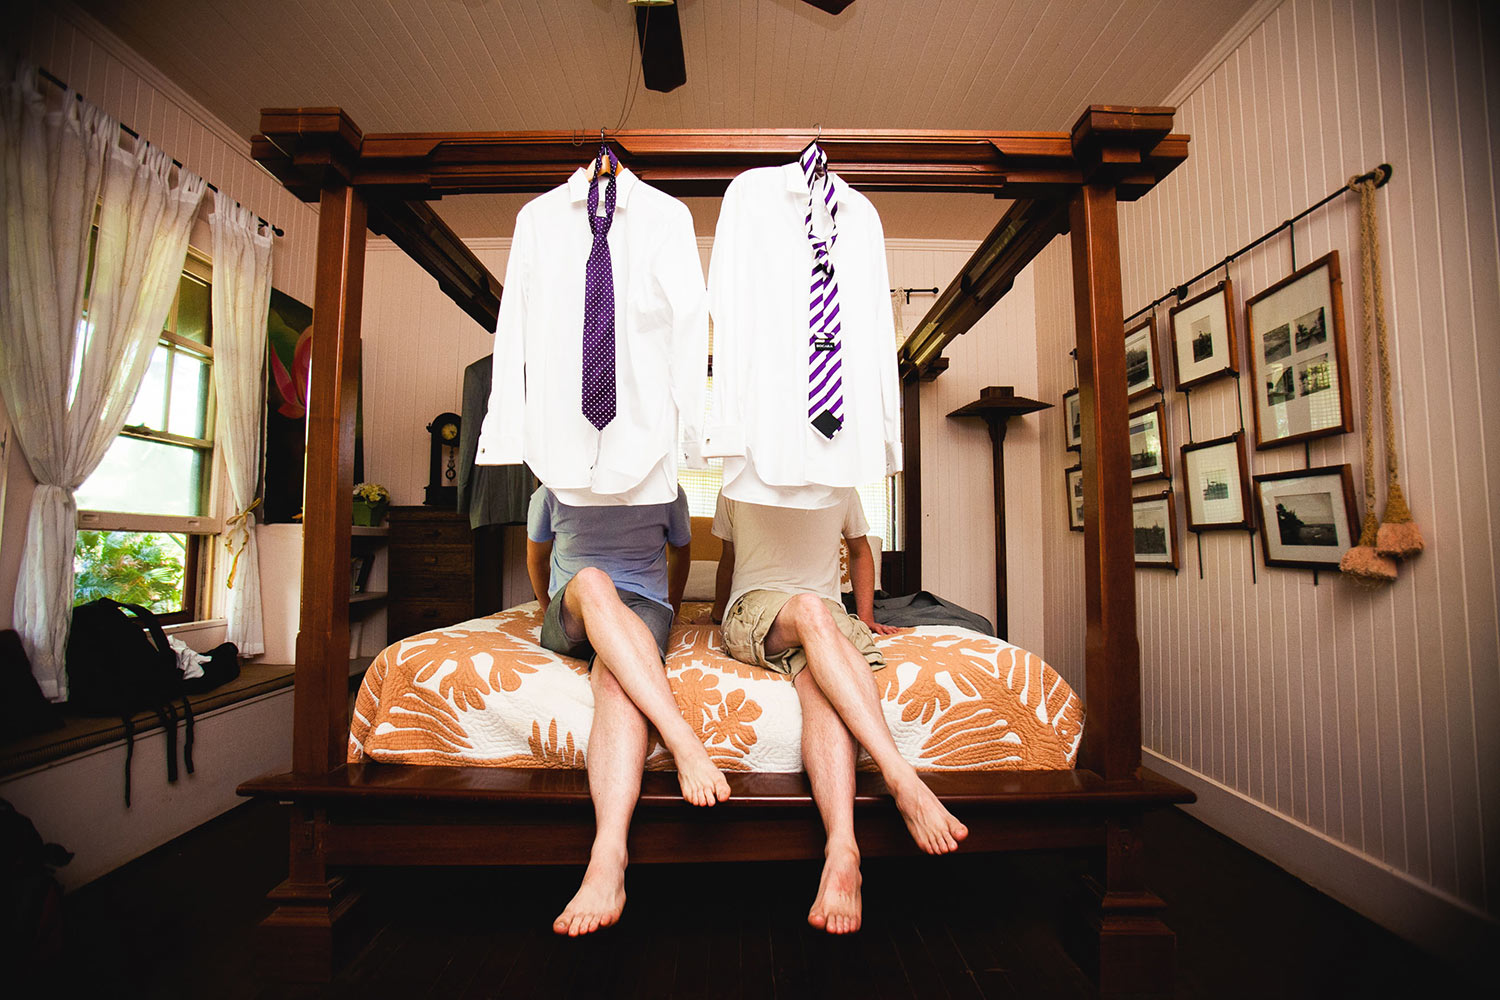 Grooms sit behind shirts and ties on four poster bed - photo by Callaway Gable - Los Angeles